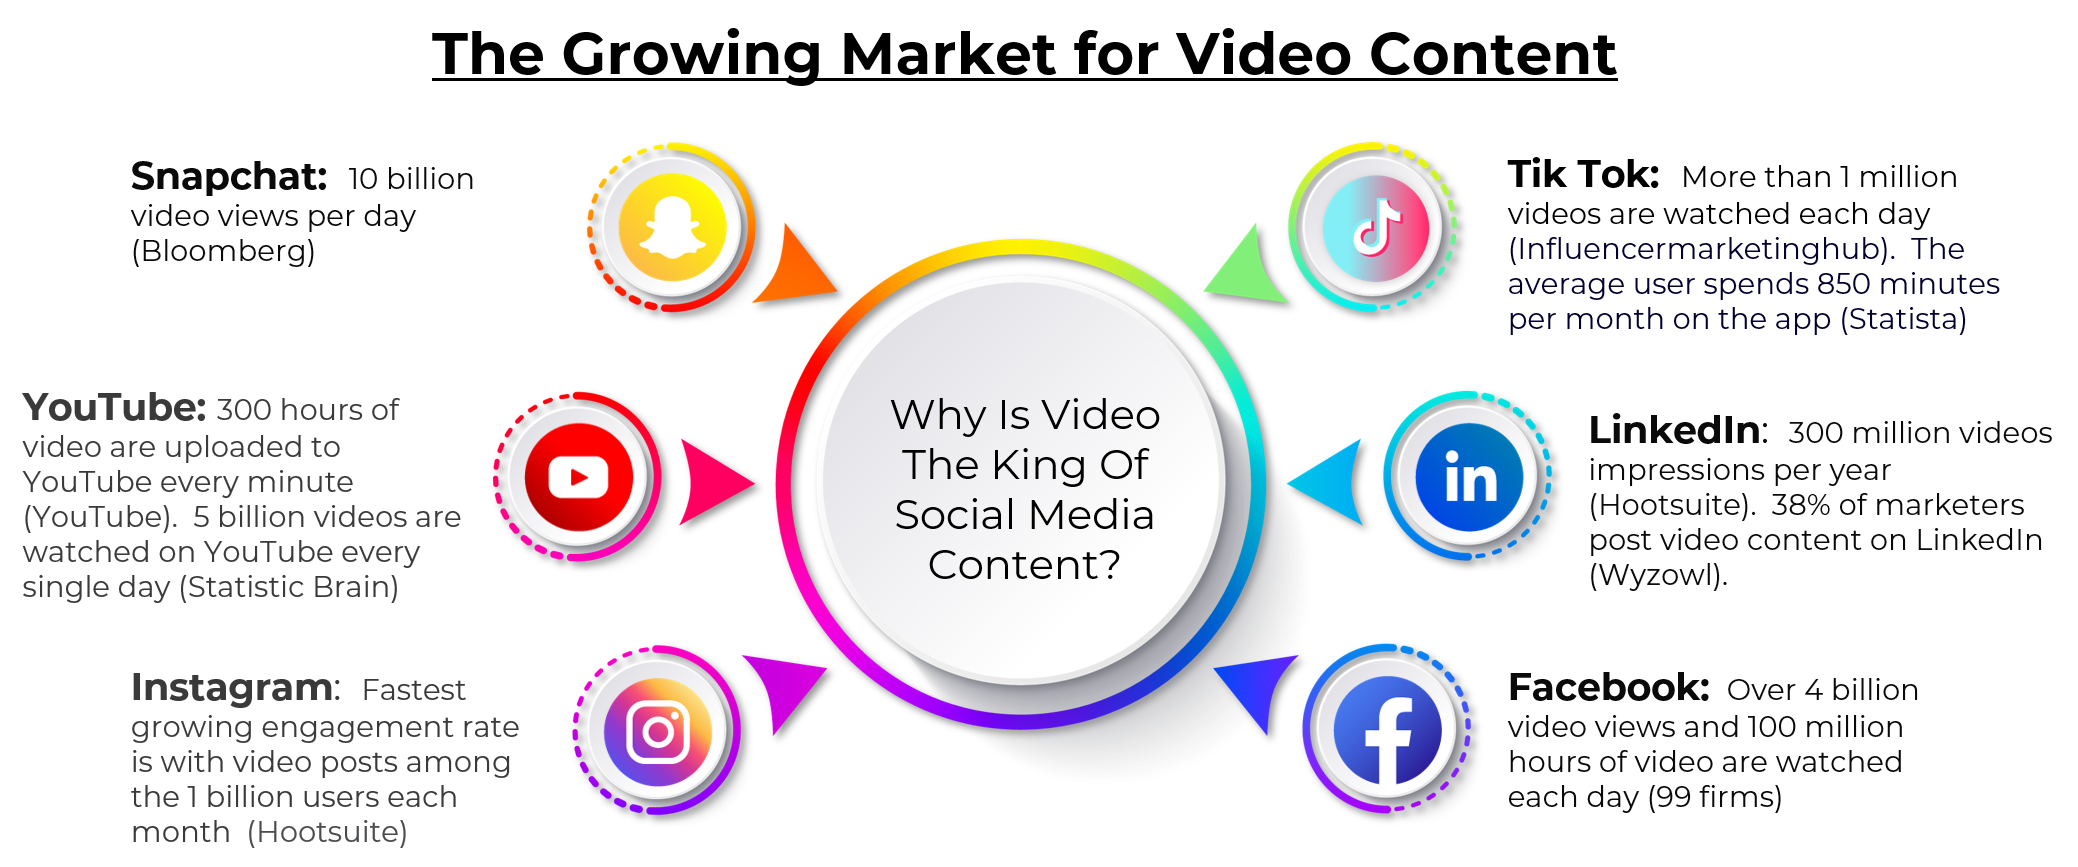 Why is Video the King of Social Media Content - www.visualbreakthroughs.com